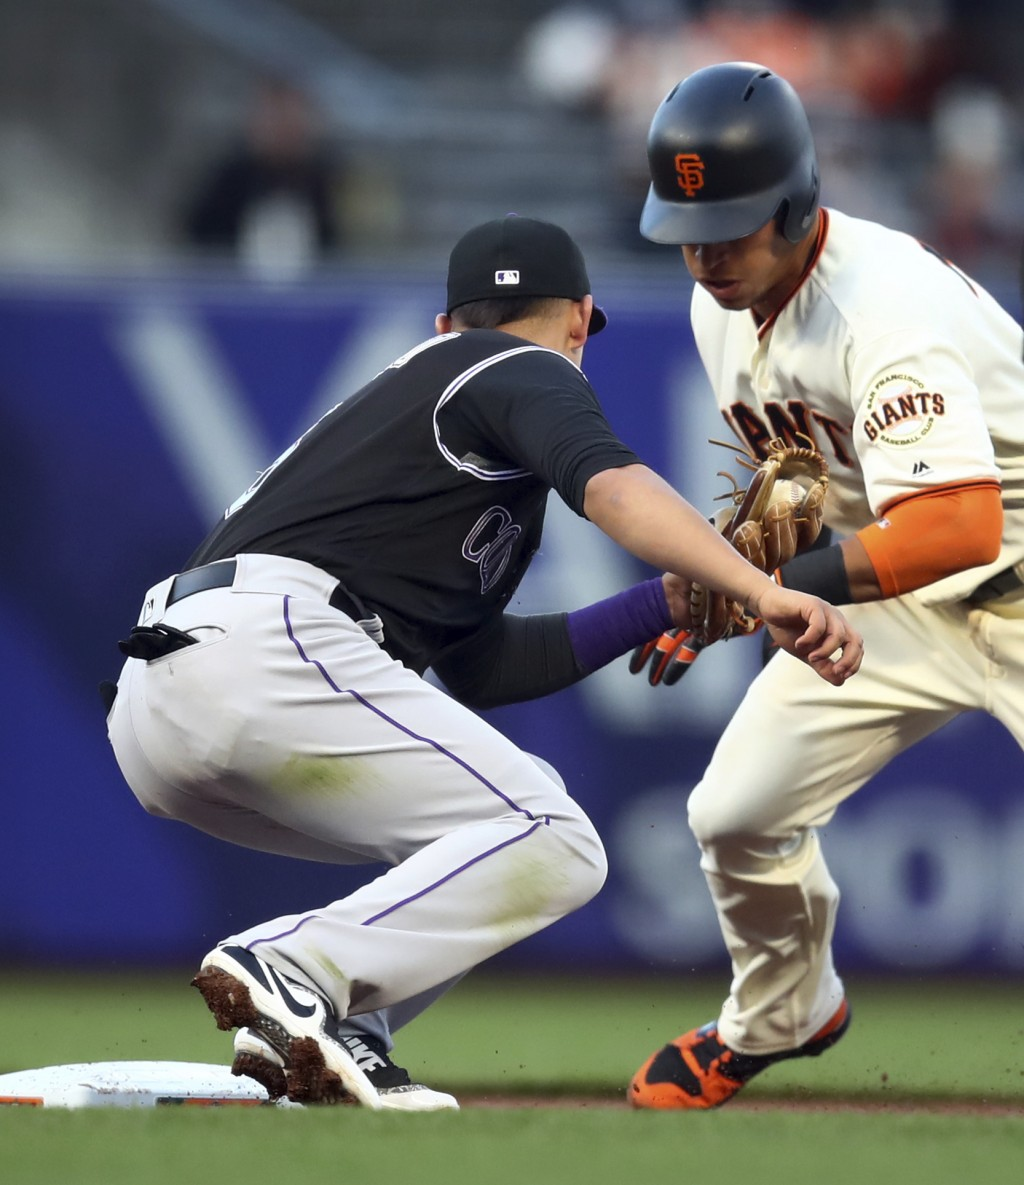 Colorado Rockies' Daniel Castro, left, tags out San Francisco Giants' Gorkys Hernandez on a first-inning attempted steal of second base during a baseb